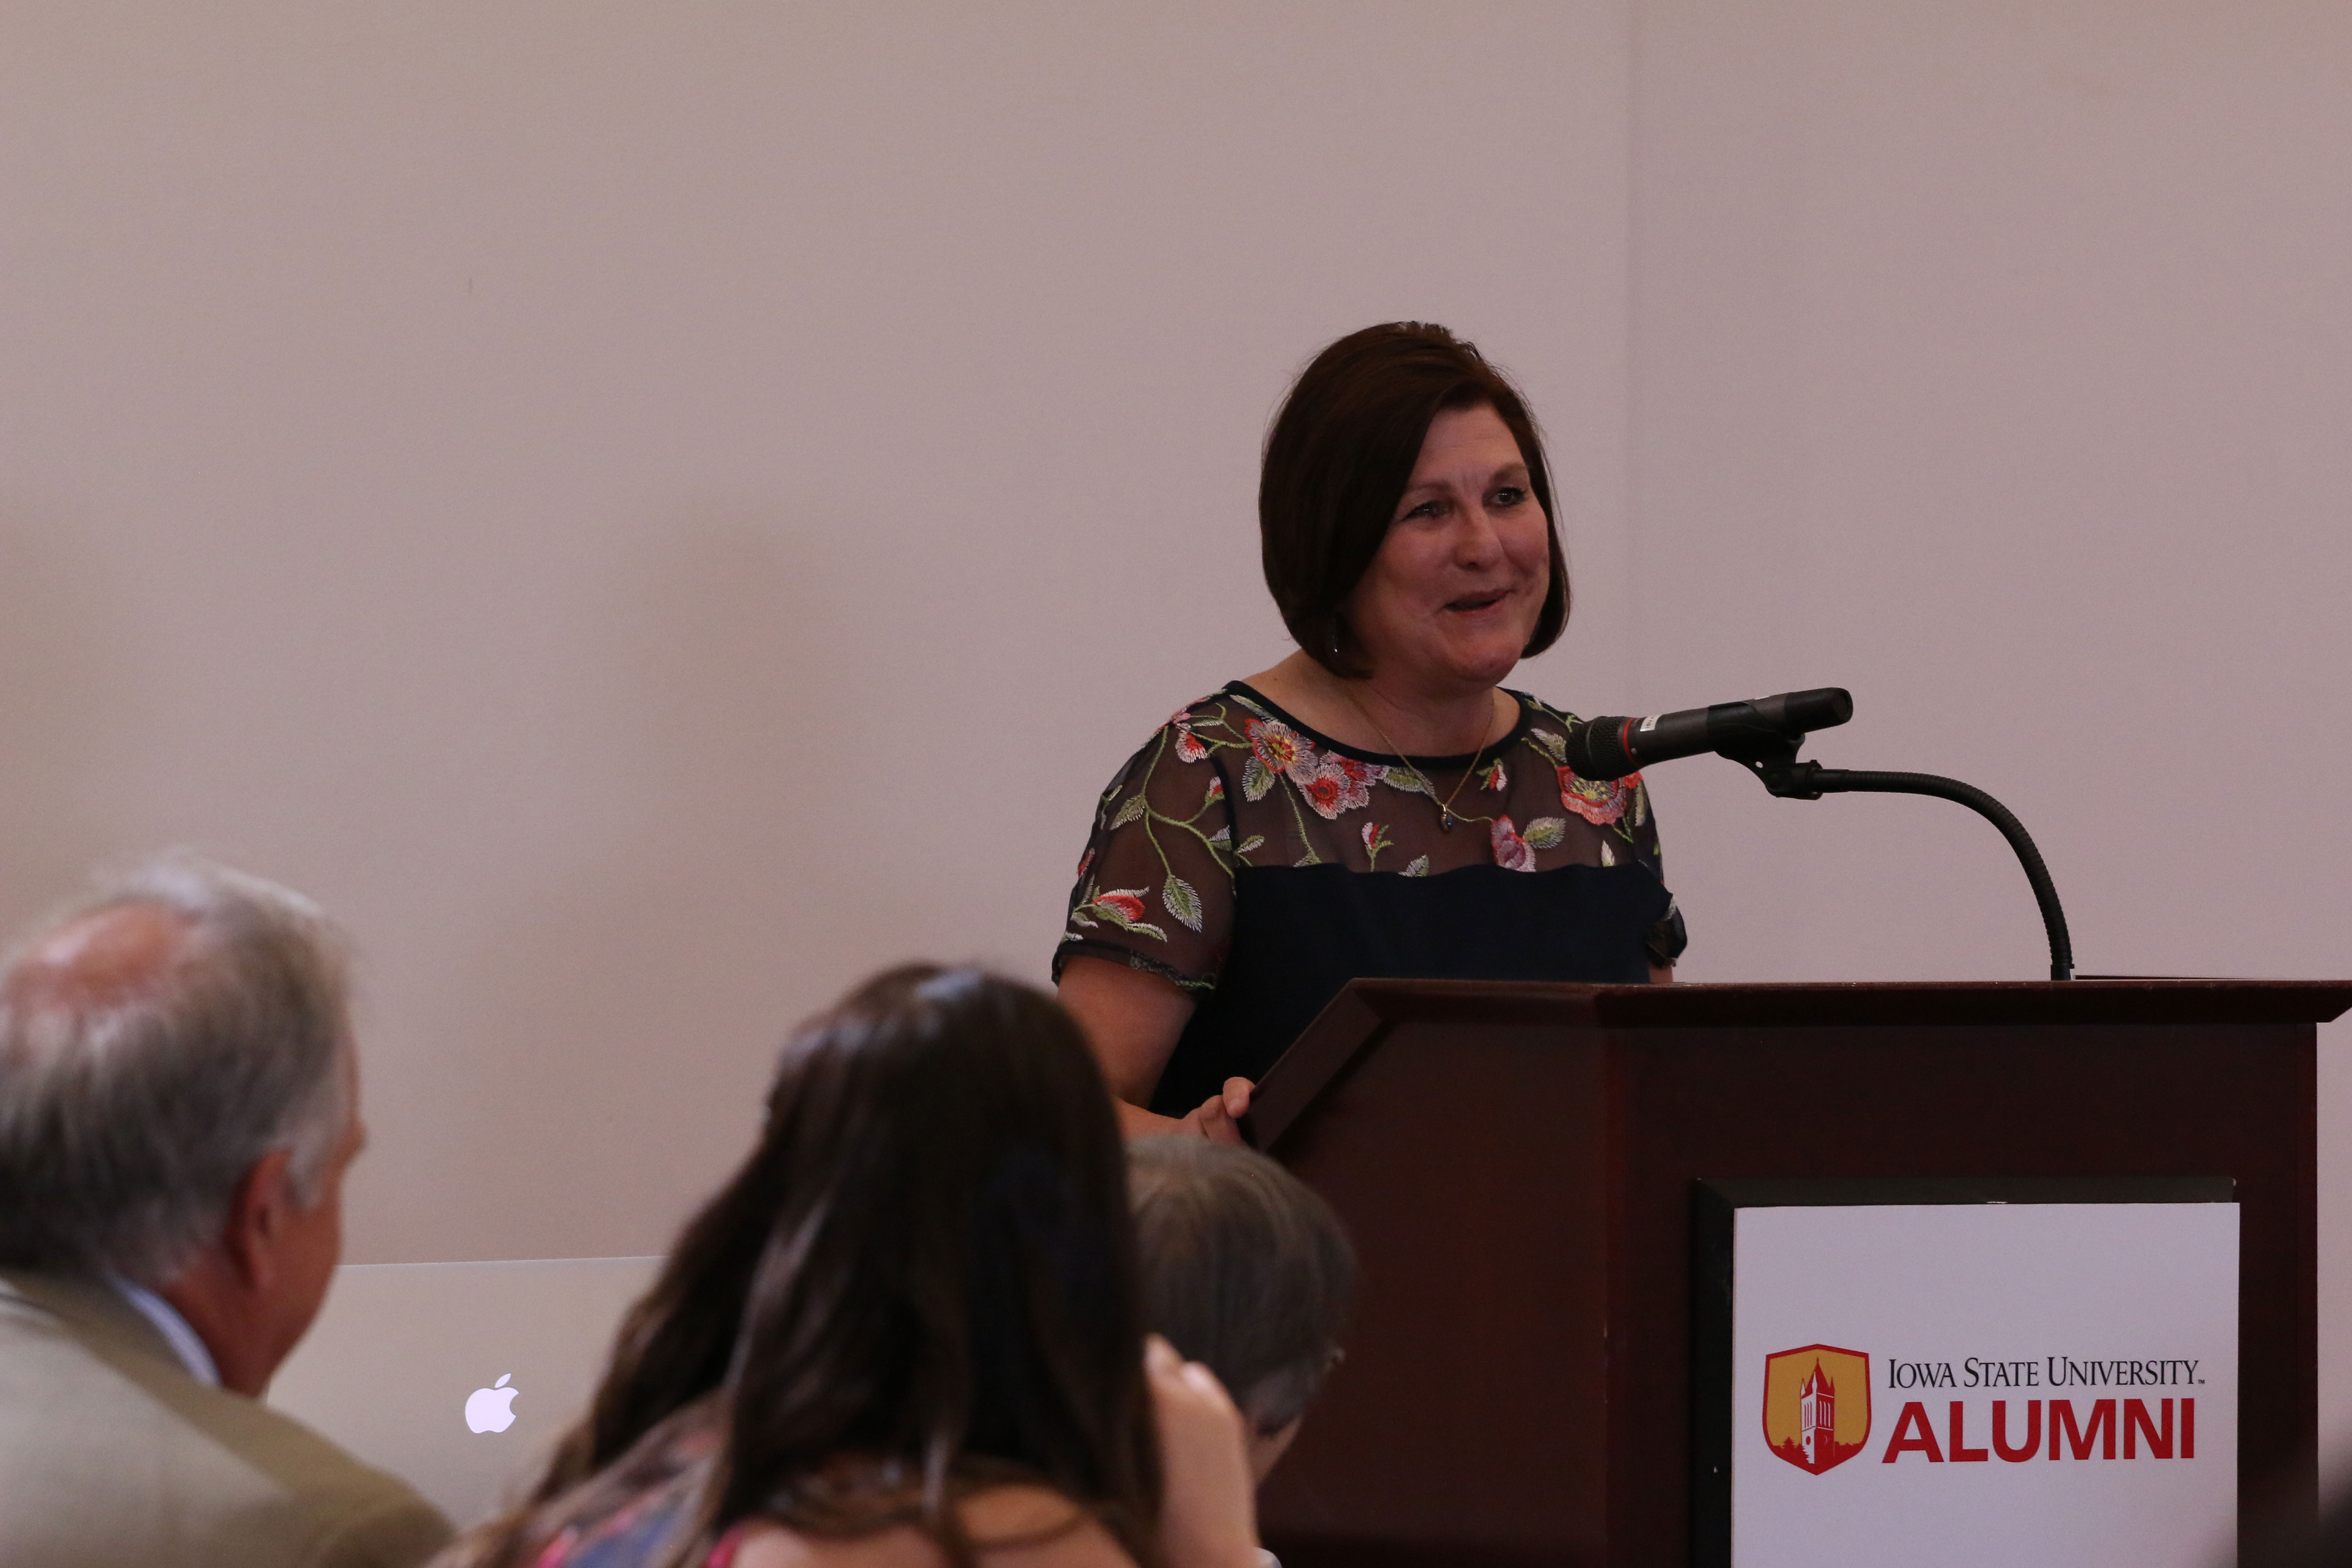 In her farewell speech, Bystrom thanked her friends, colleagues, Catt Center donors and family for their support during her 22 years as director.